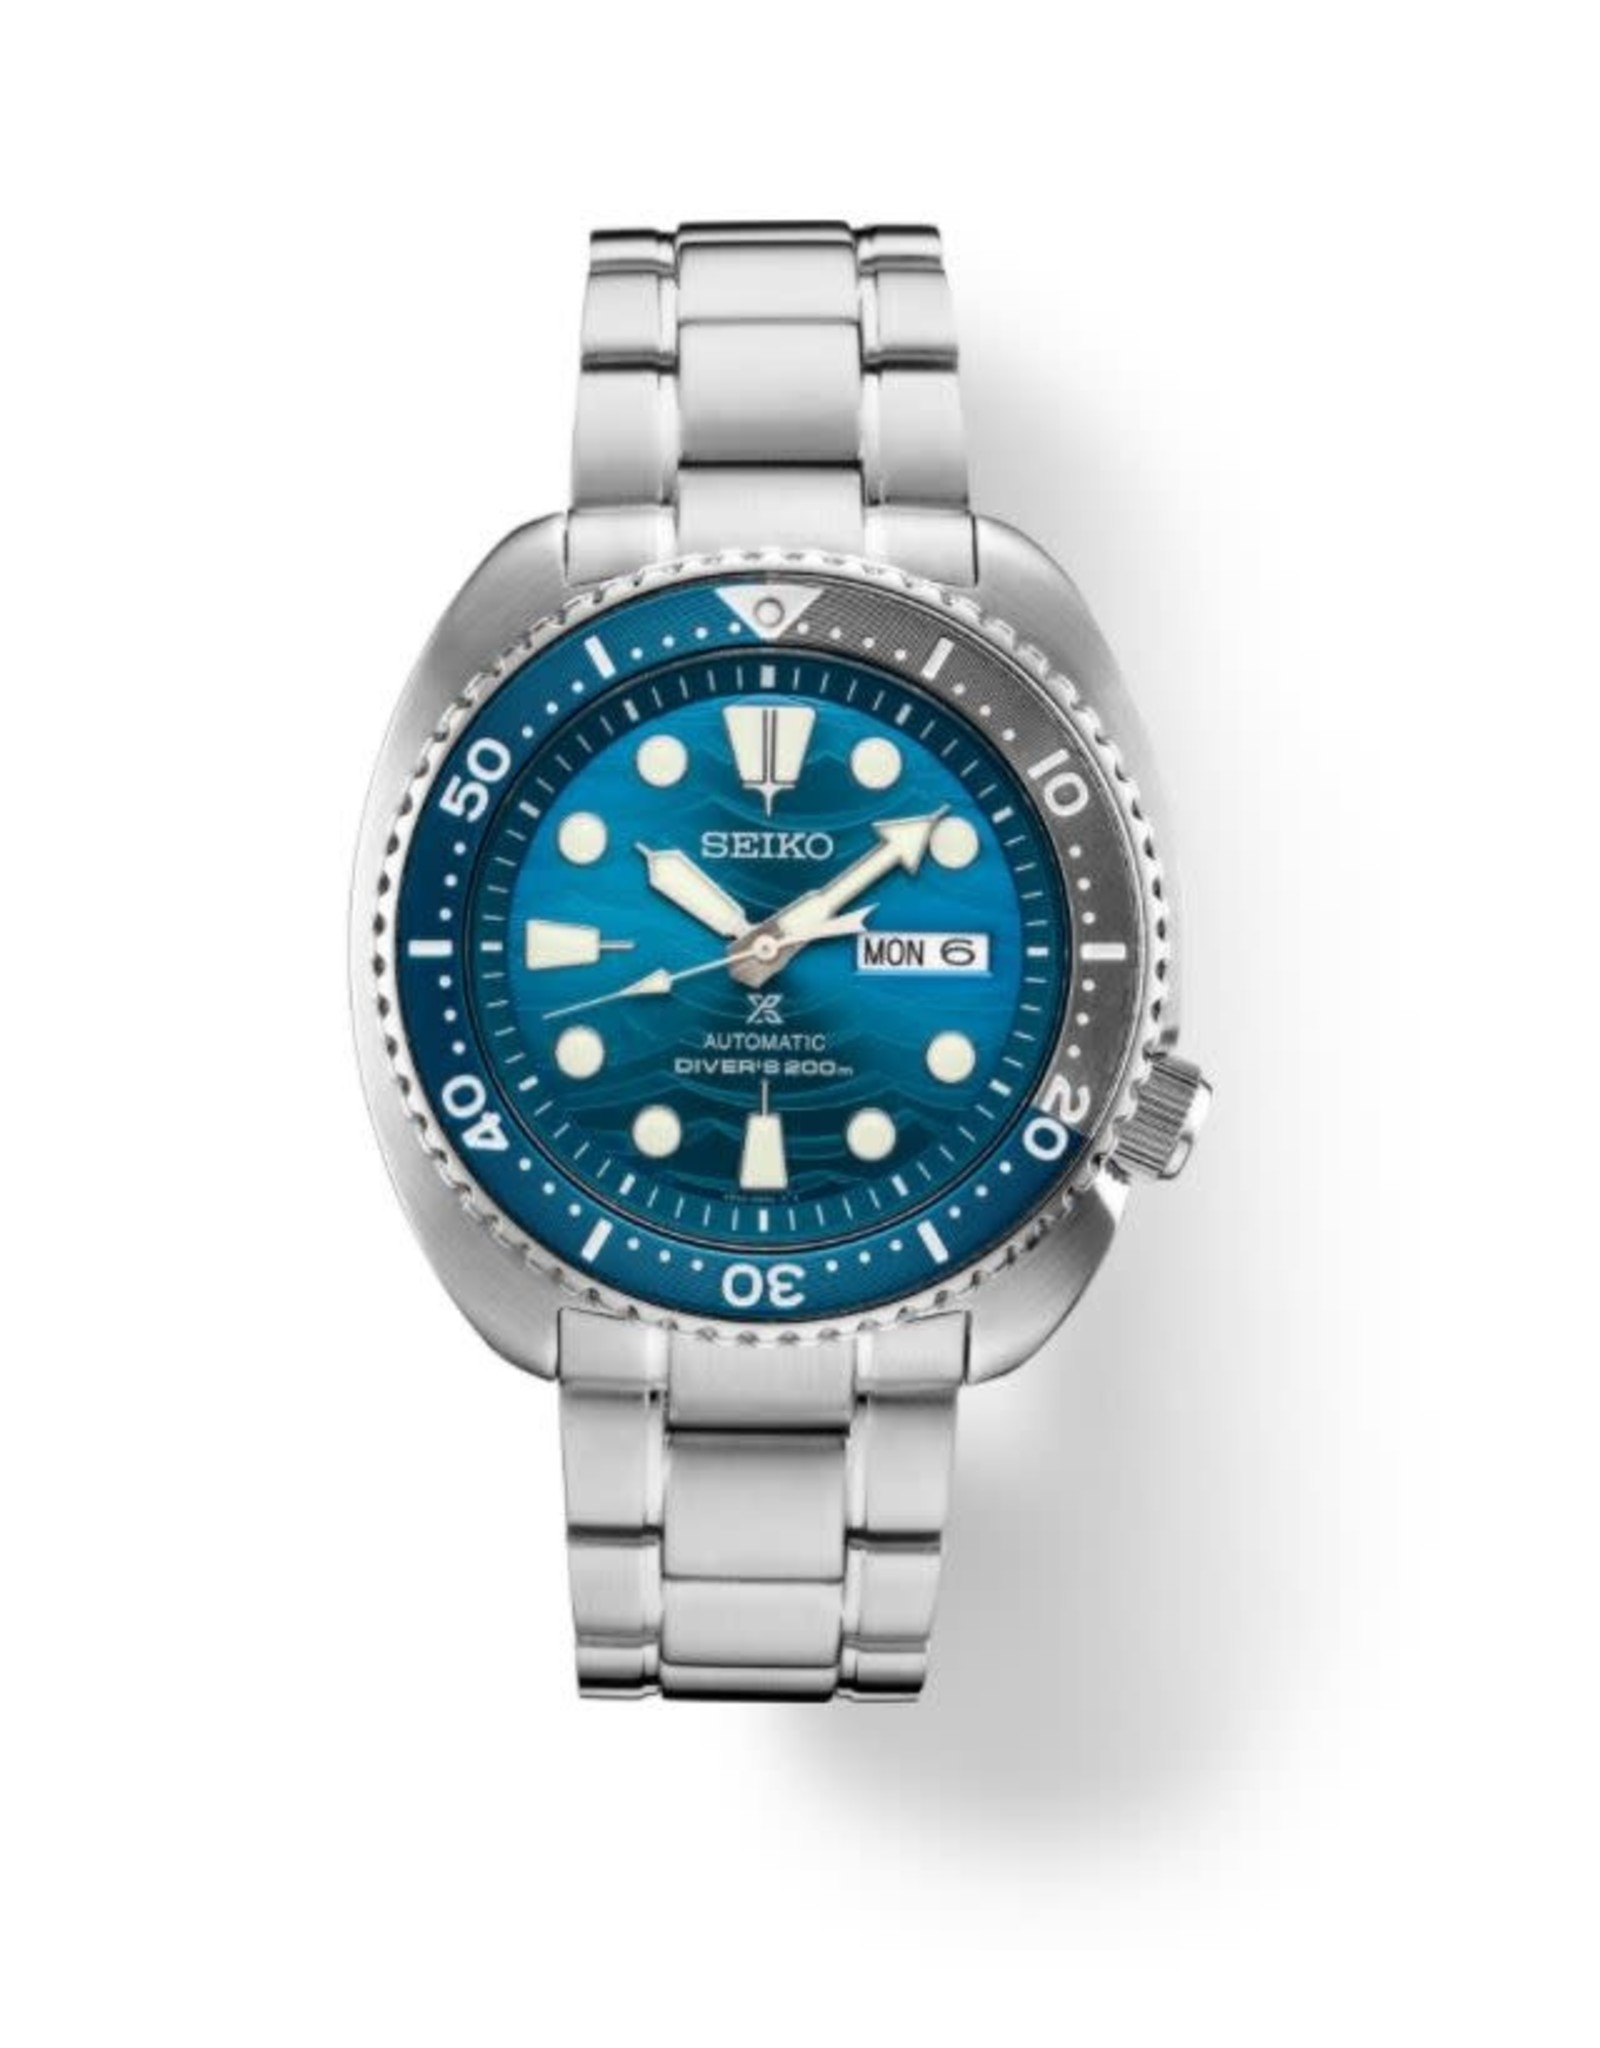 Mens Seiko Automatic Divers Watch with Stainless Steel Band and Royal Blue Dial, 45mm